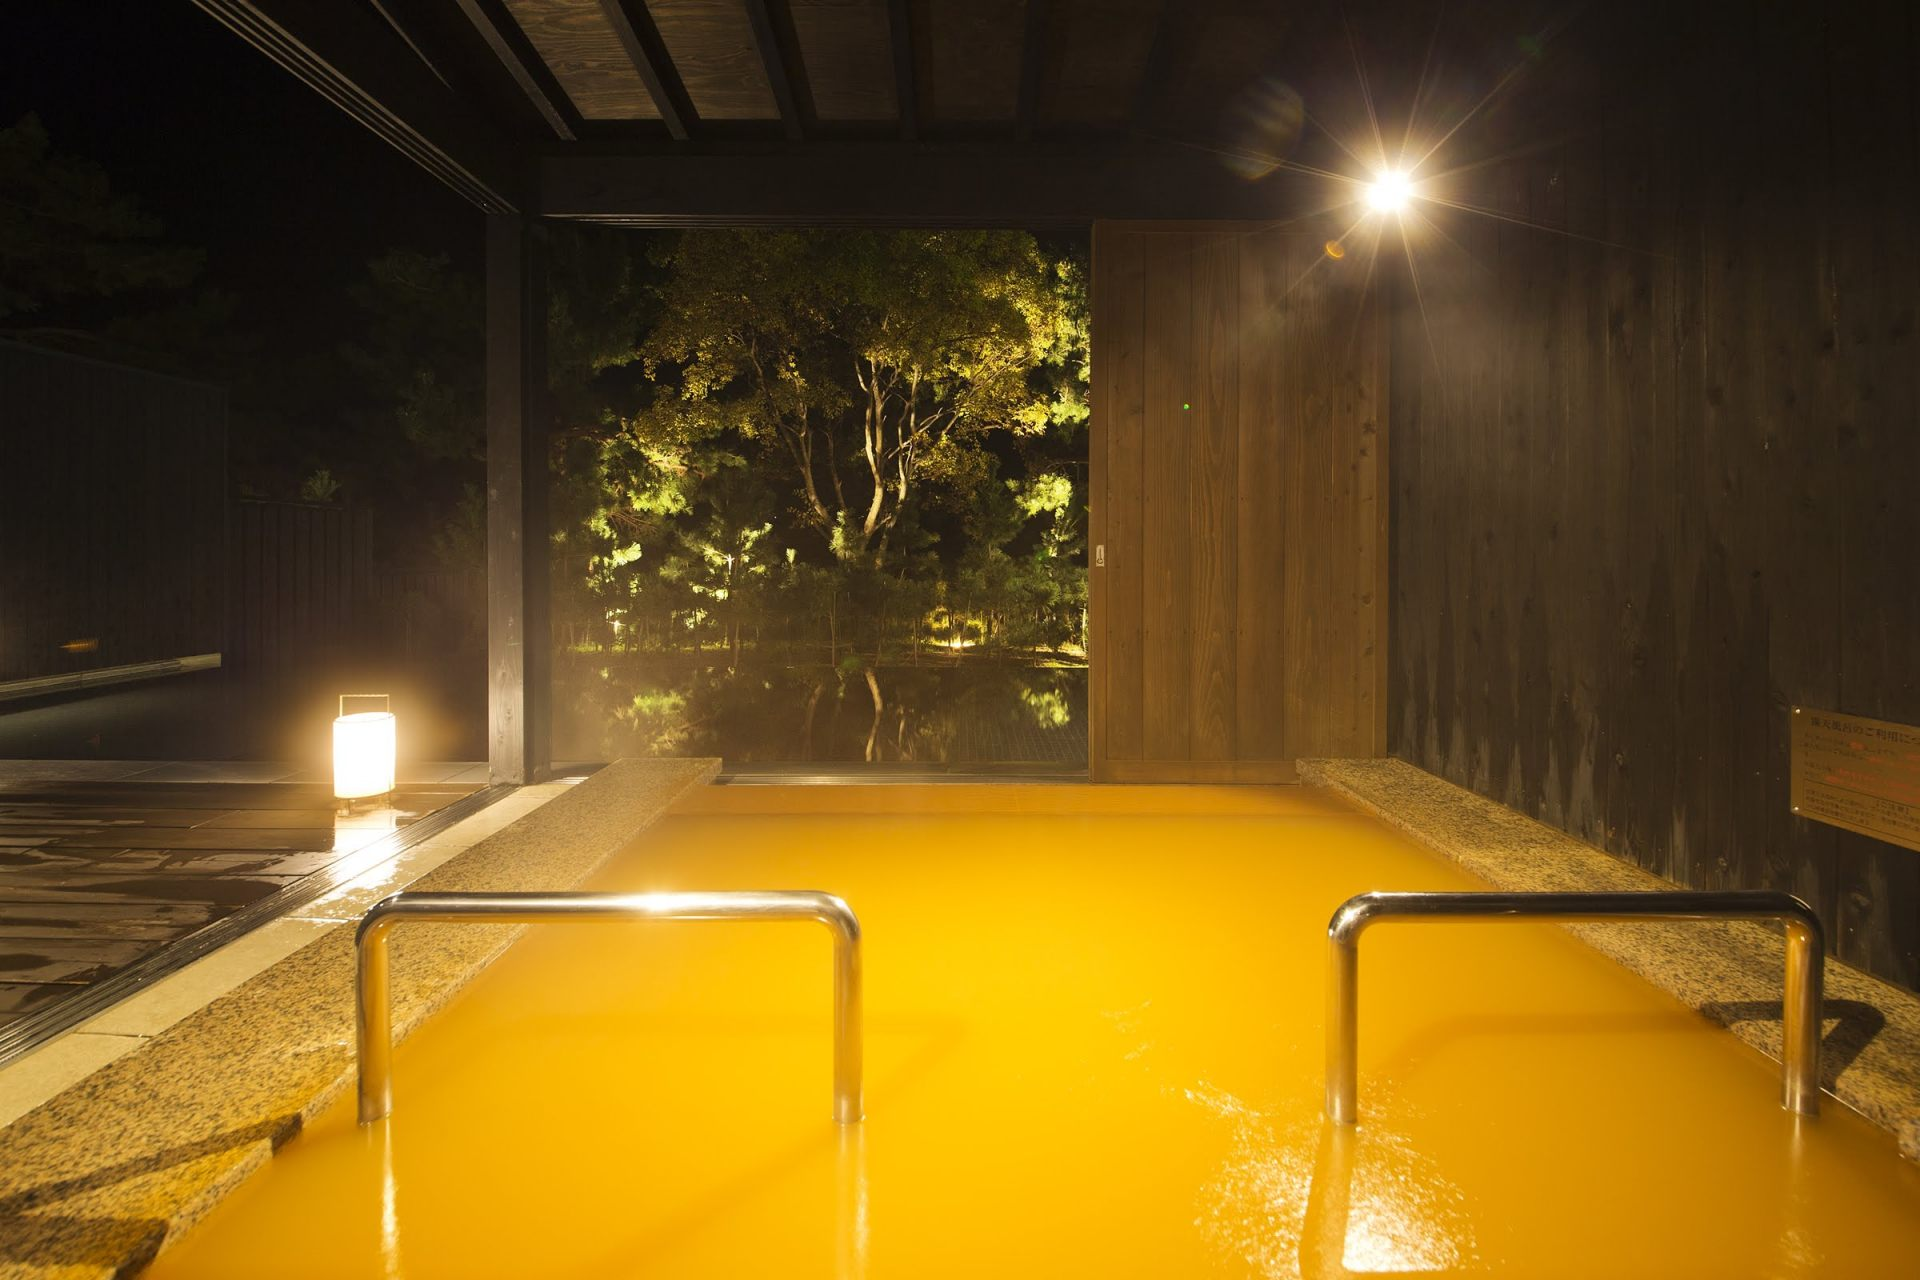 In the Golden Hot Spring, you can bathe in amber-colored water called akayu.